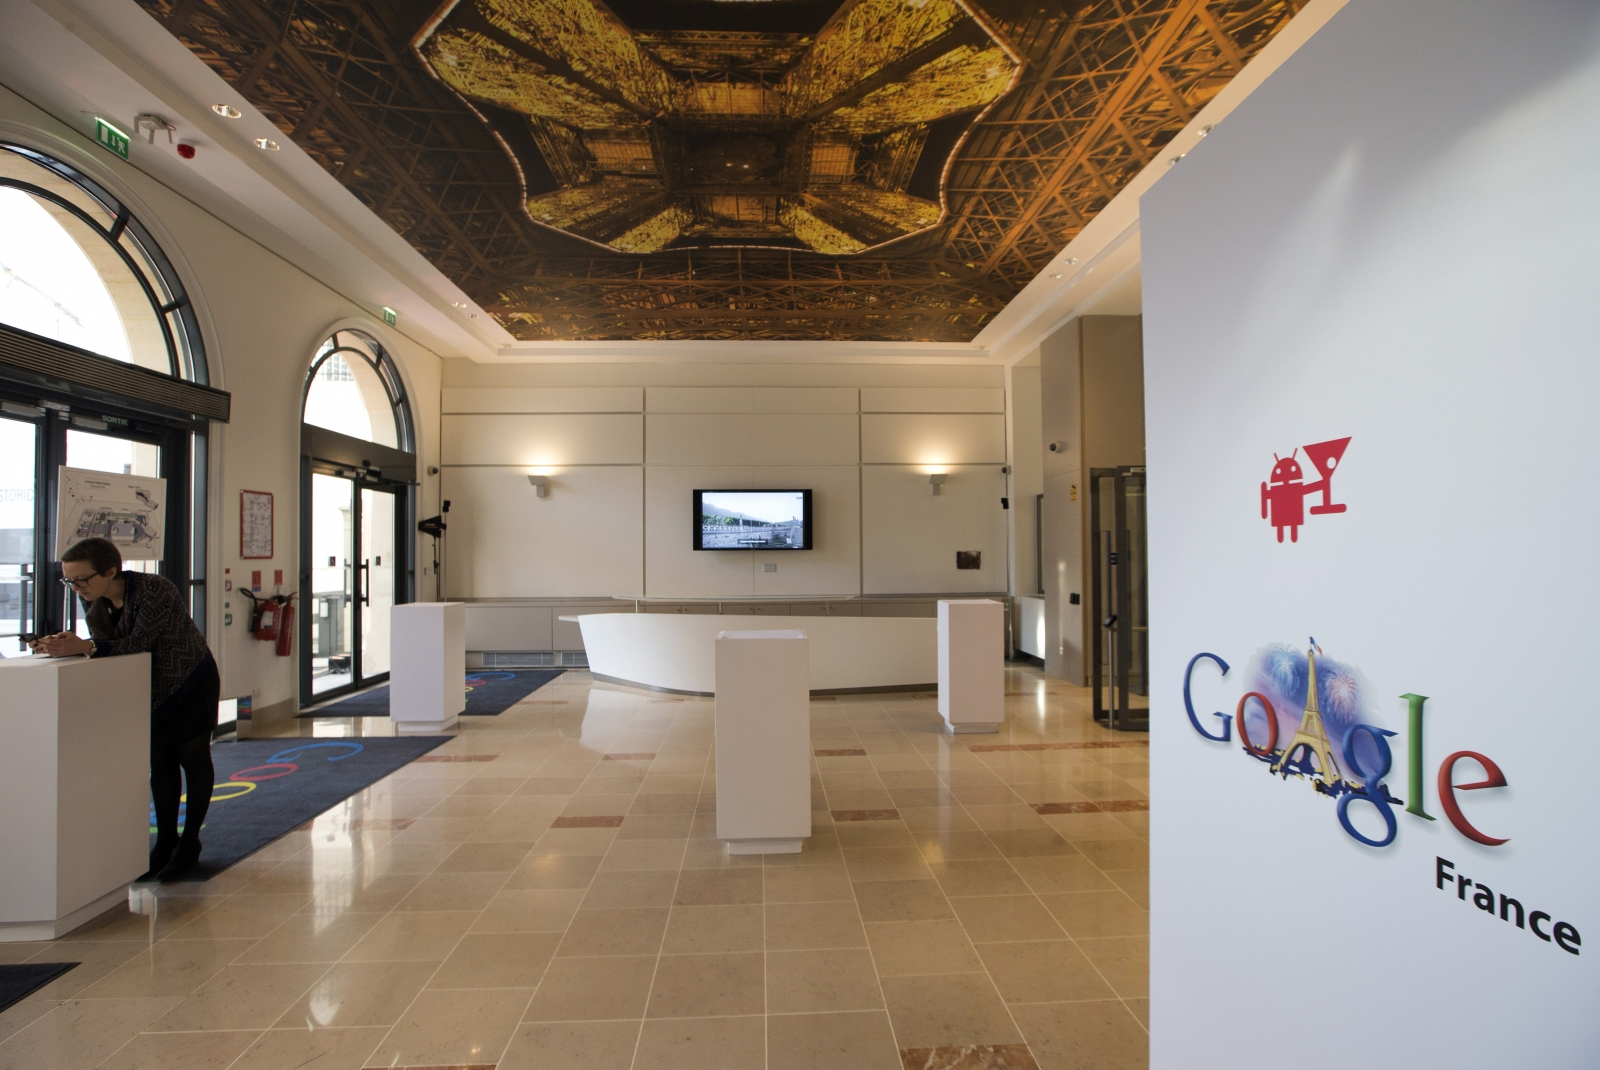 Google paris